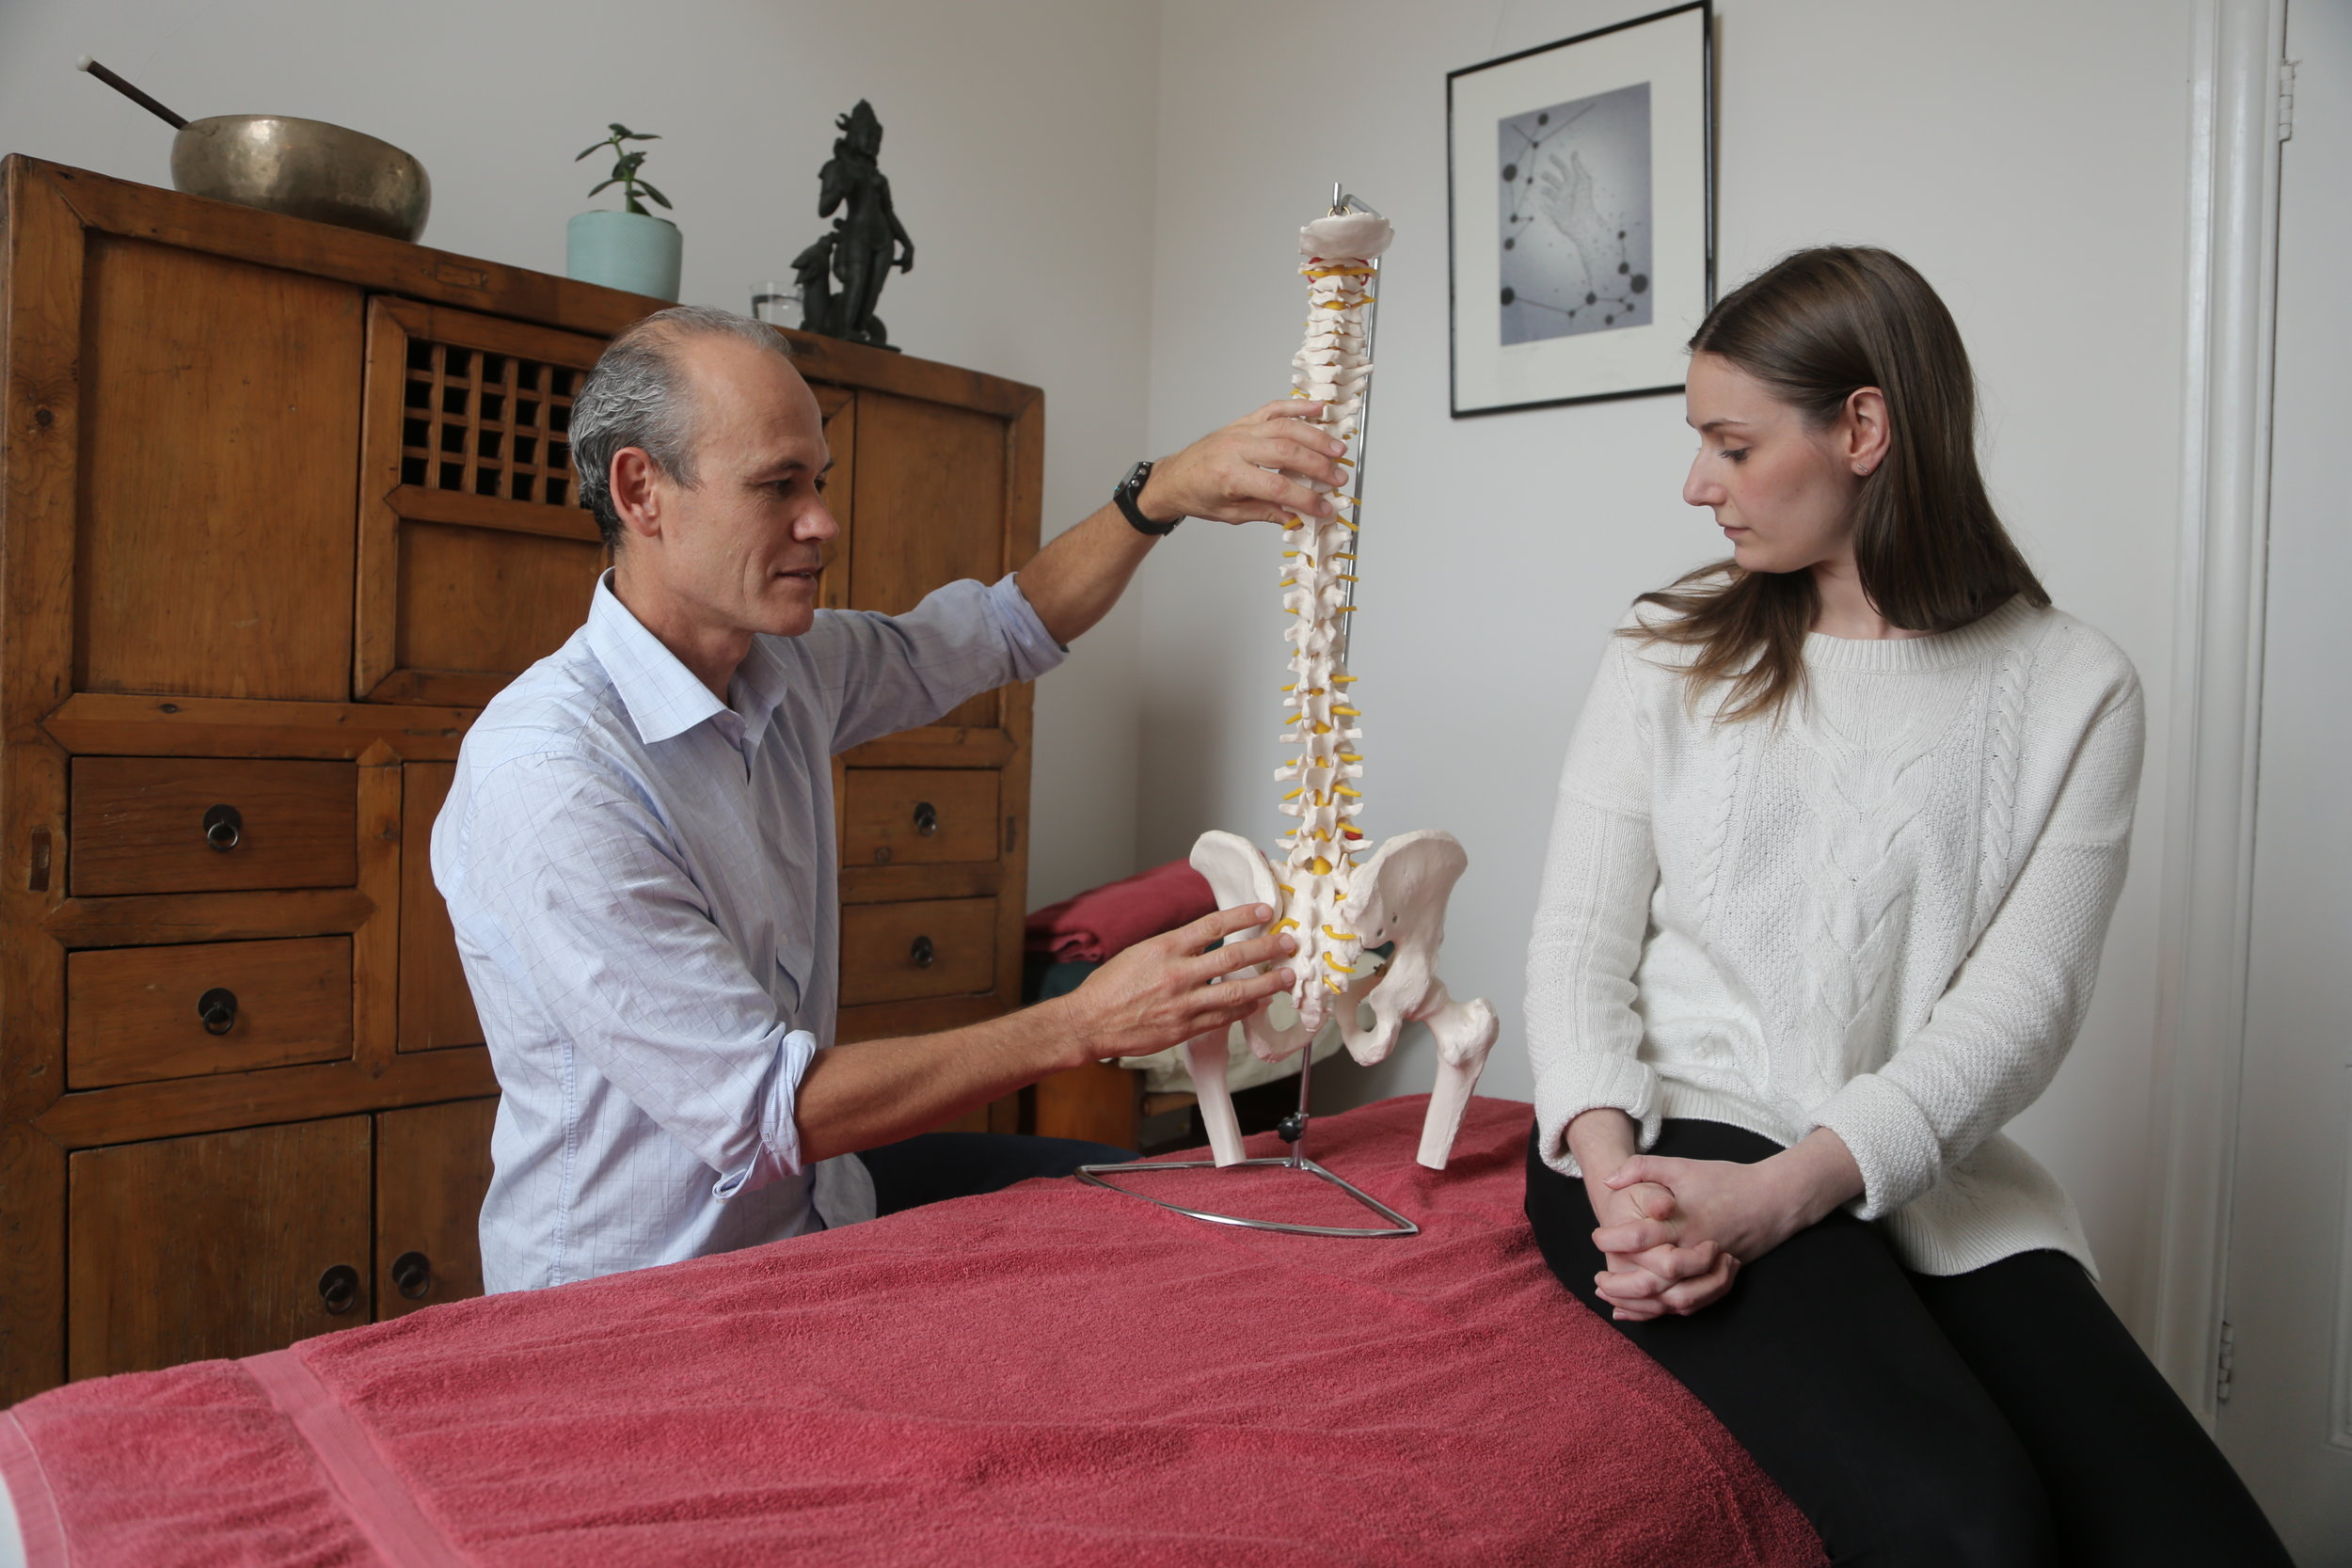 Rolfing at Abbotsford Convent with Aruna Giri